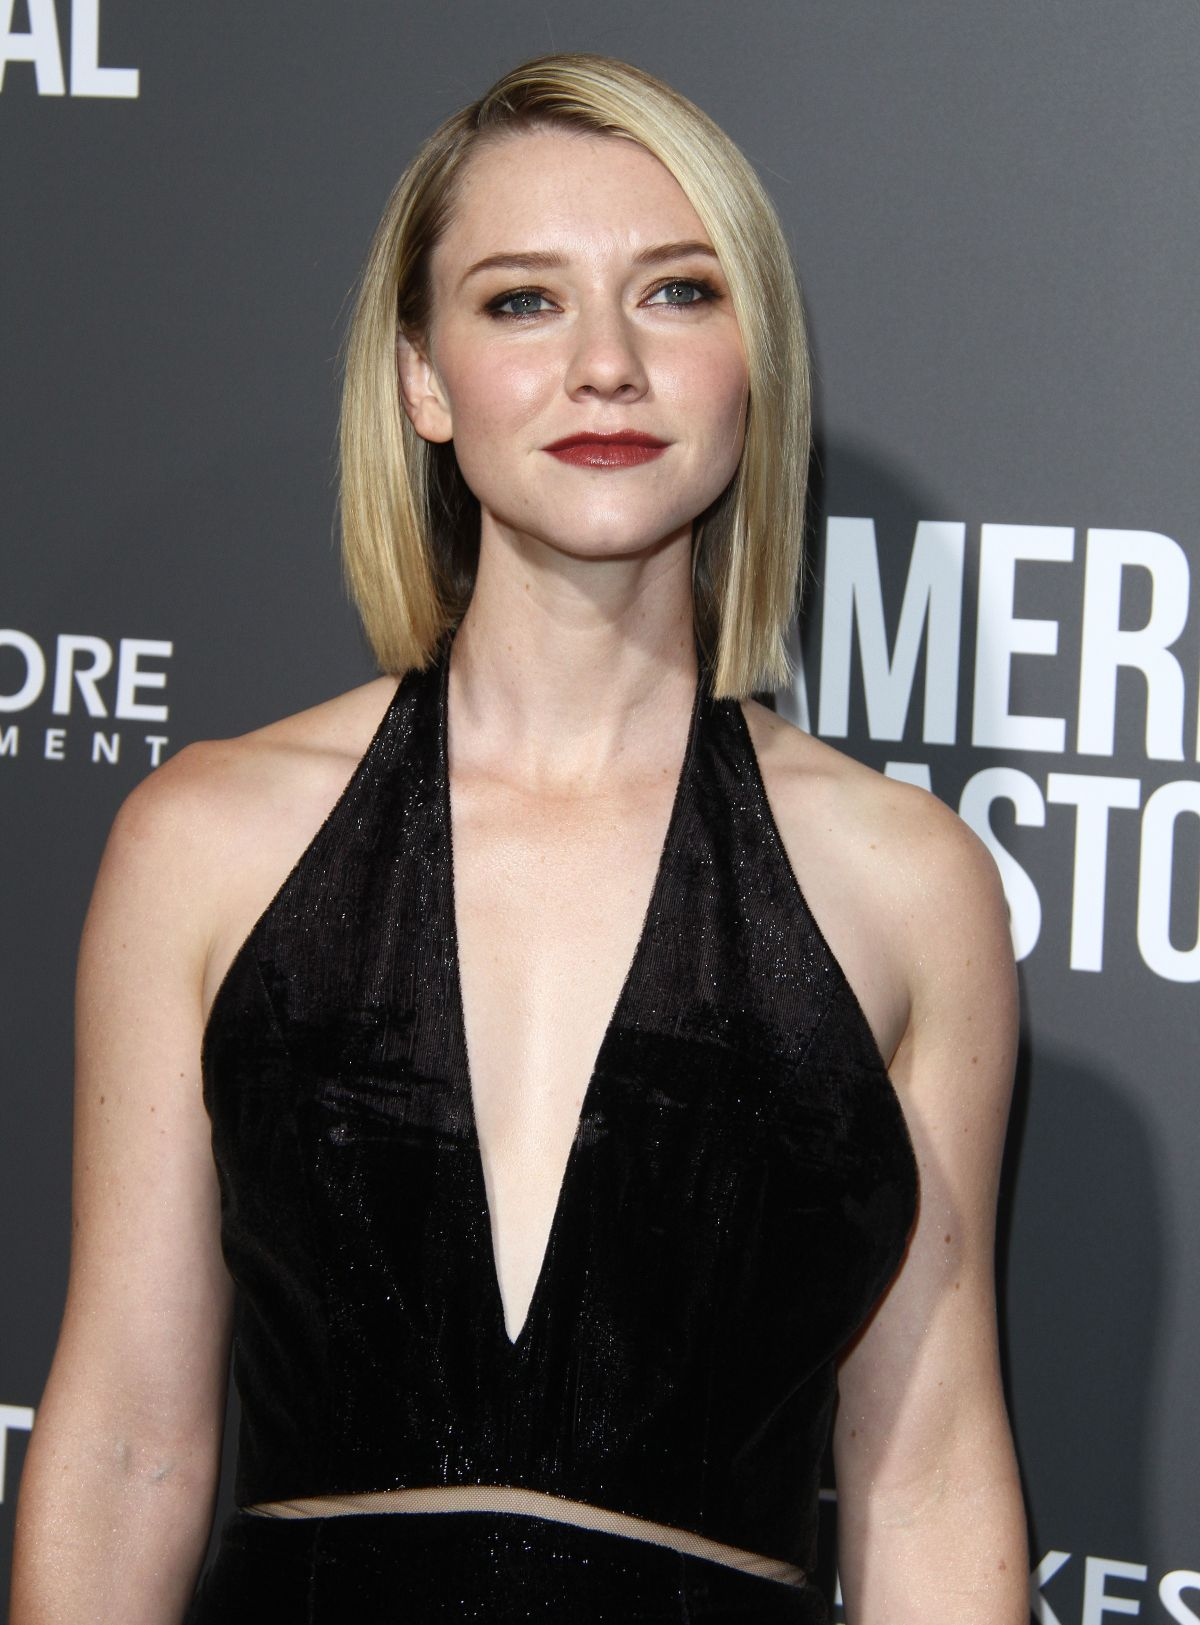 Hot Valorie Curry naked (98 photo), Topless, Sideboobs, Selfie, butt 2018